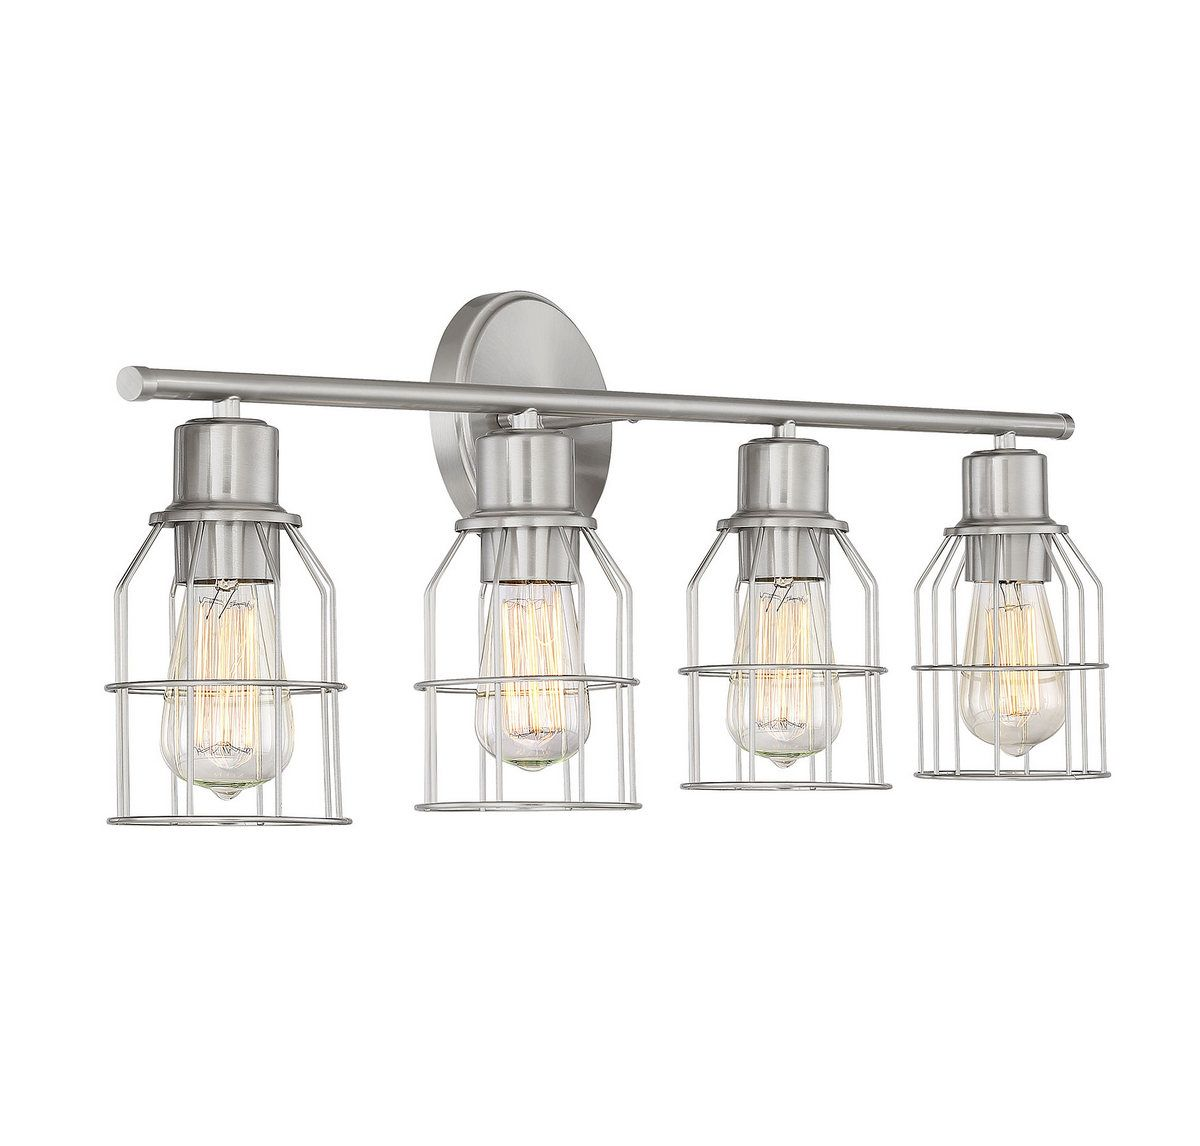 Trade Winds Lighting Industrial Wire 4-Light Bathroom